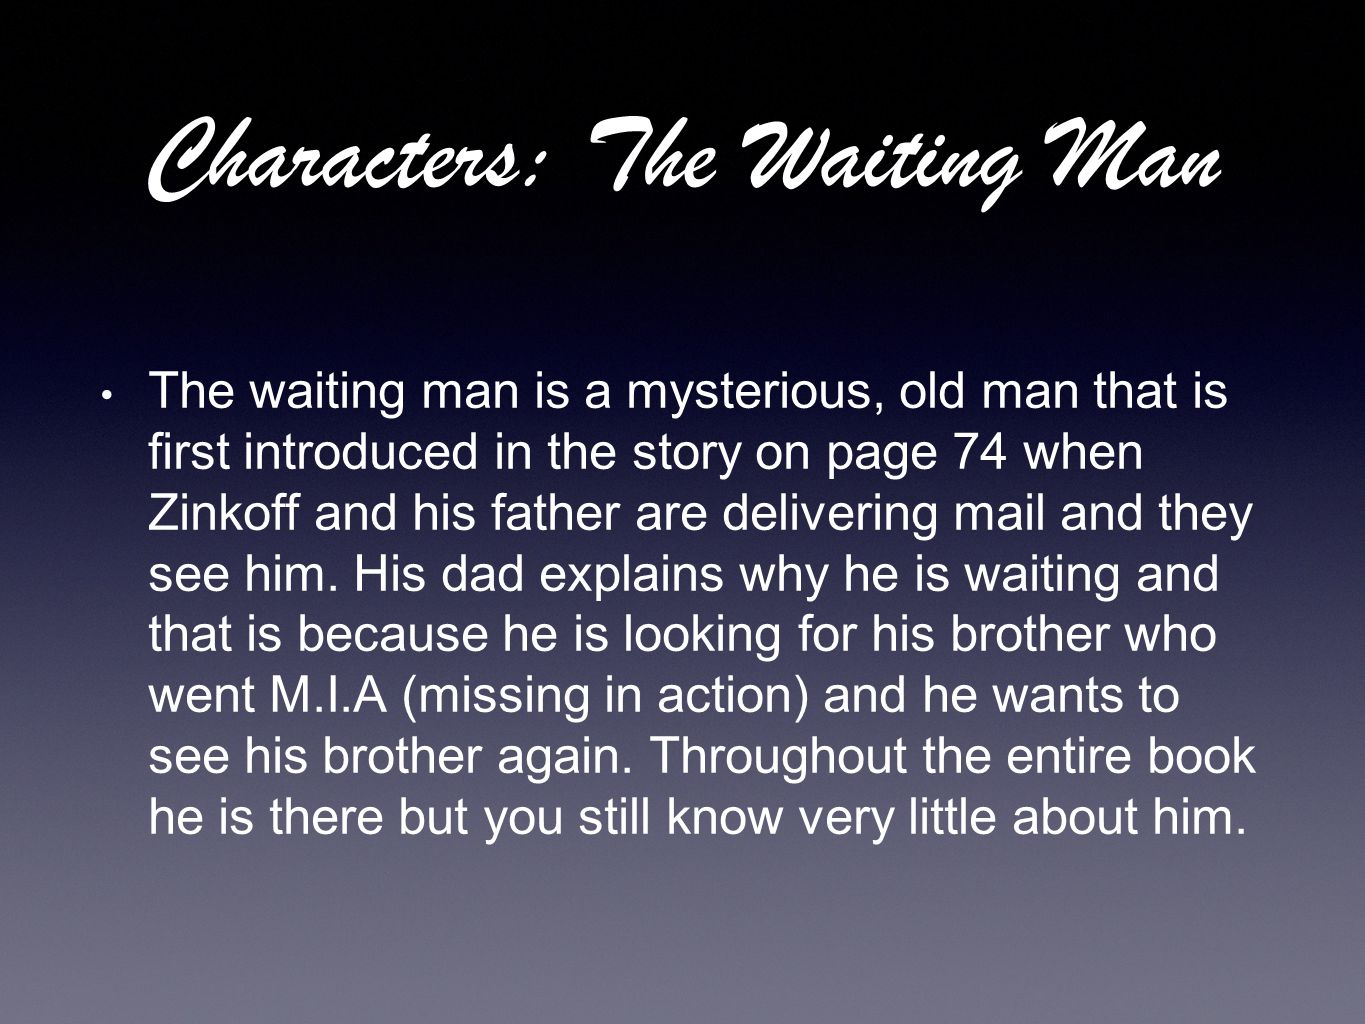 Characters: The Waiting Man